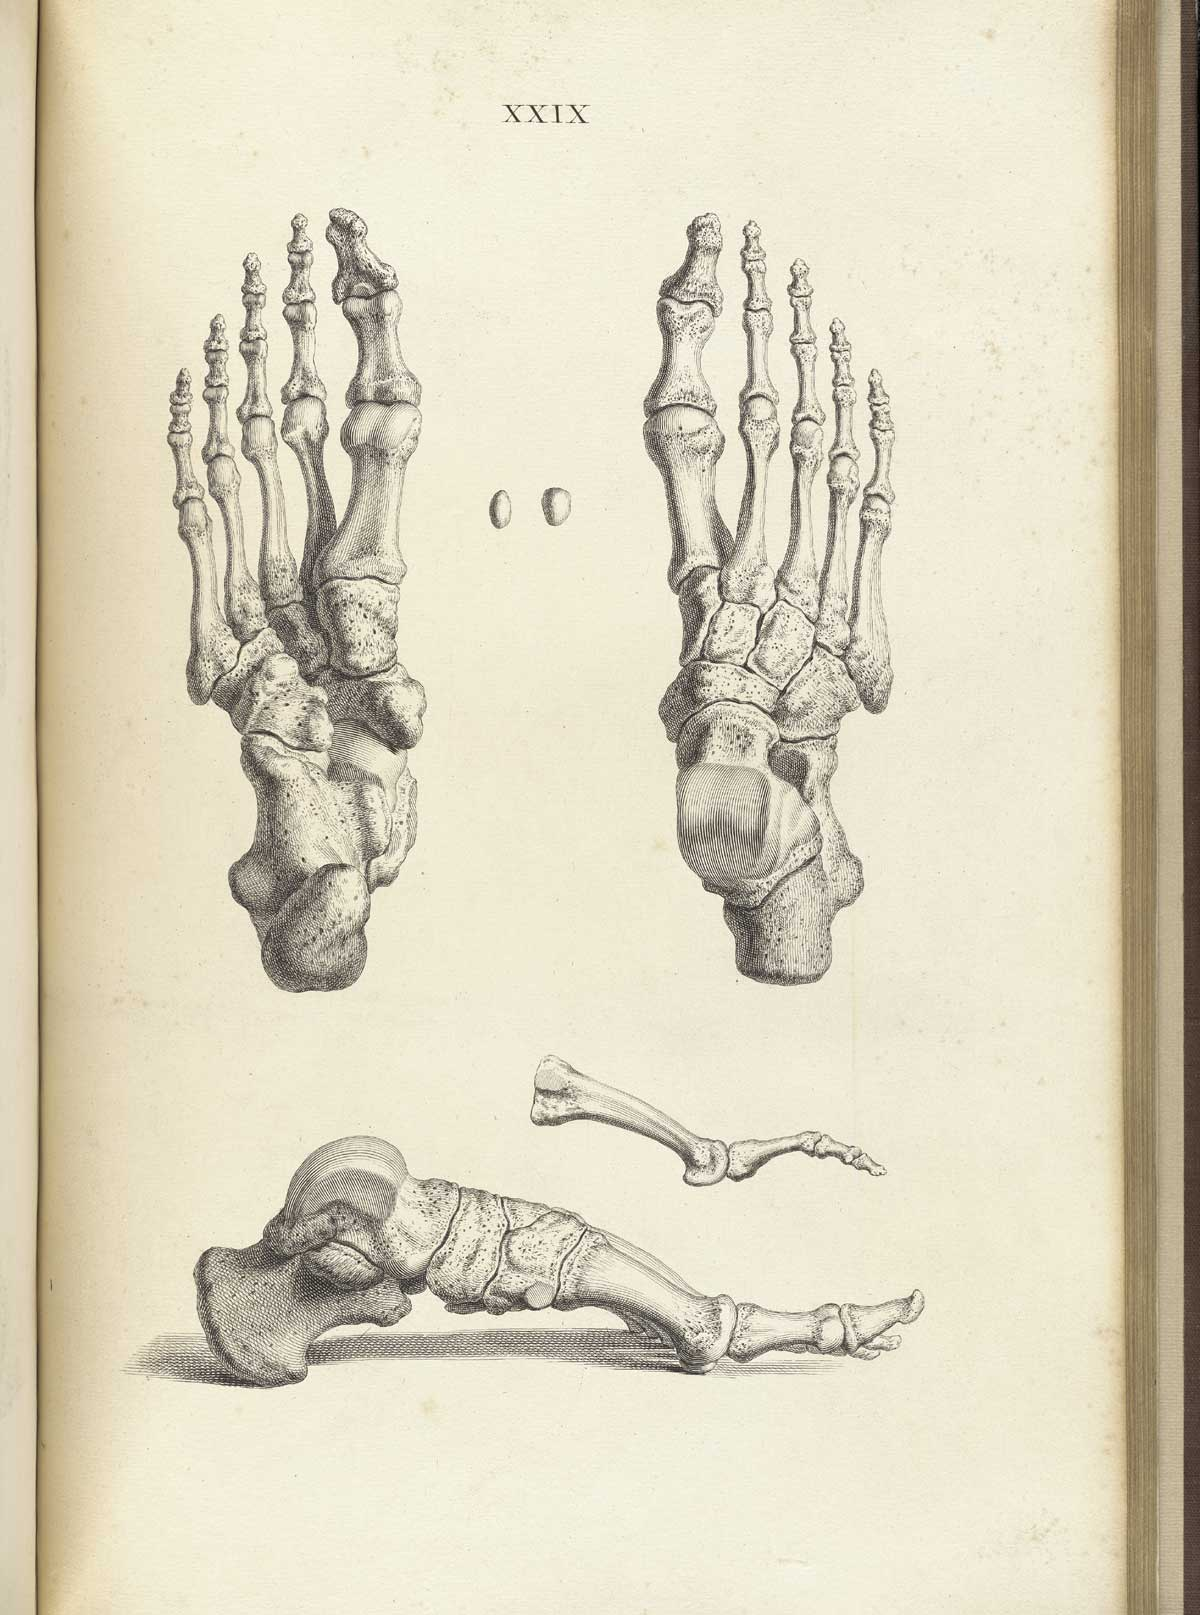 Foot Bone Anatomy How To Draw Feet With Structure 2018 12 28